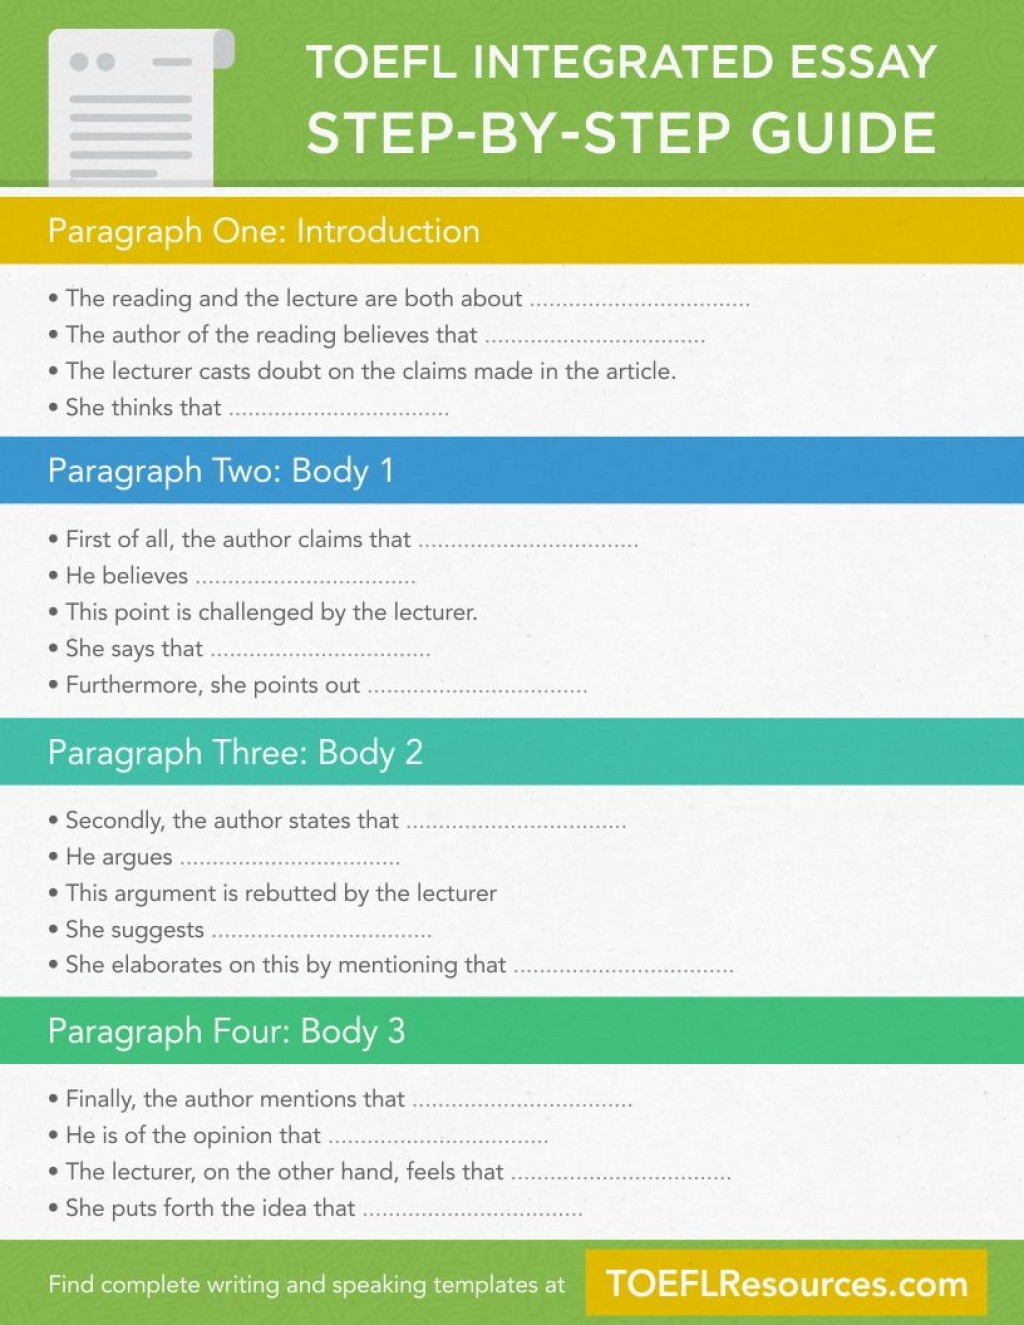 003 Essay Example Integrated Remarkable Toefl Sample Questions Practice Large